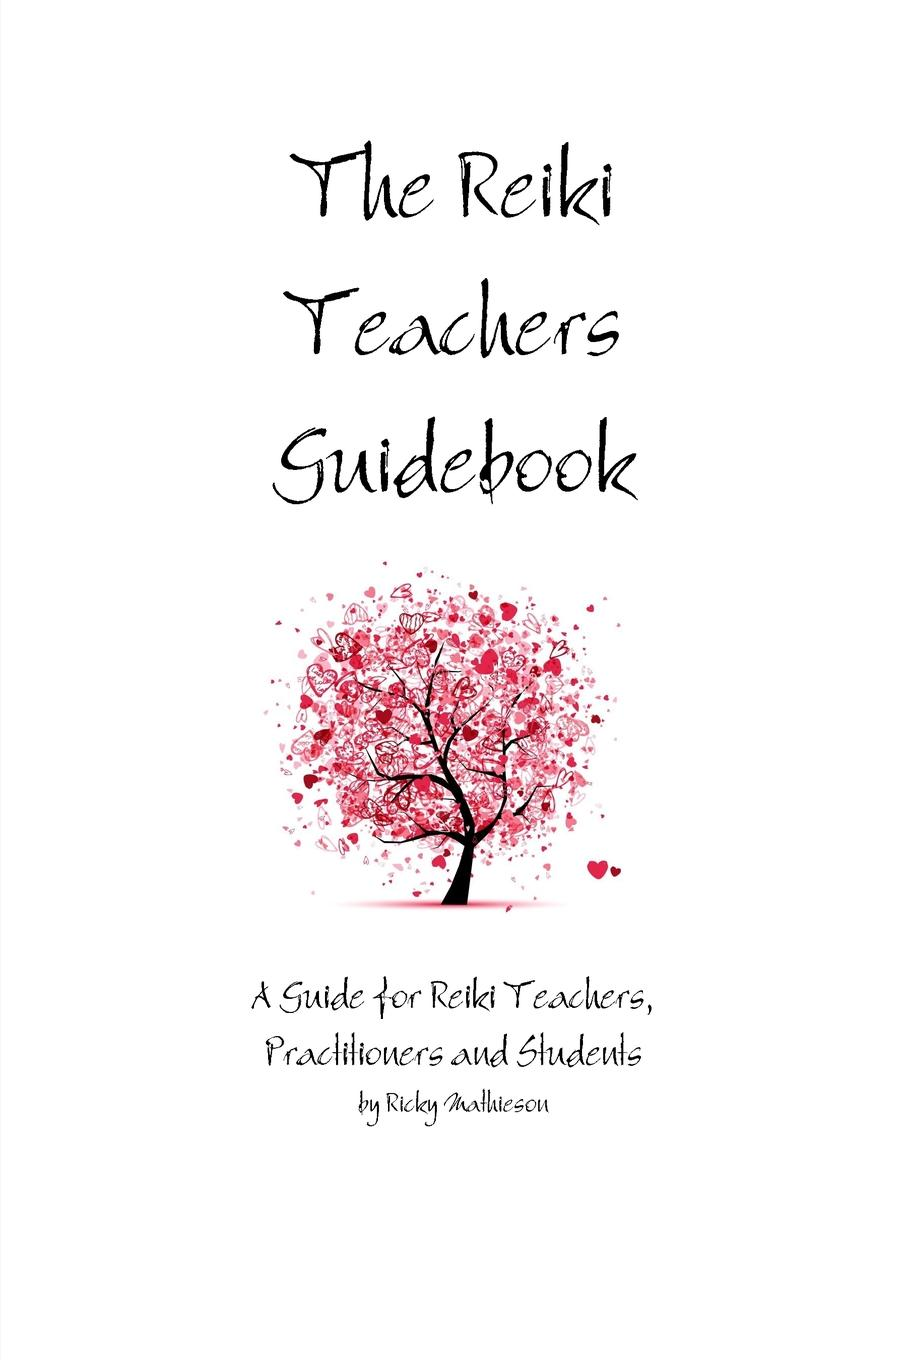 Фото - Ricky Mathieson The Reiki Teachers Guidebook. A Guide for Reiki Teachers, Practitioners and Students kathleen prasad the animal reiki handbook finding your way with reiki in your local shelter sanctuary or rescue